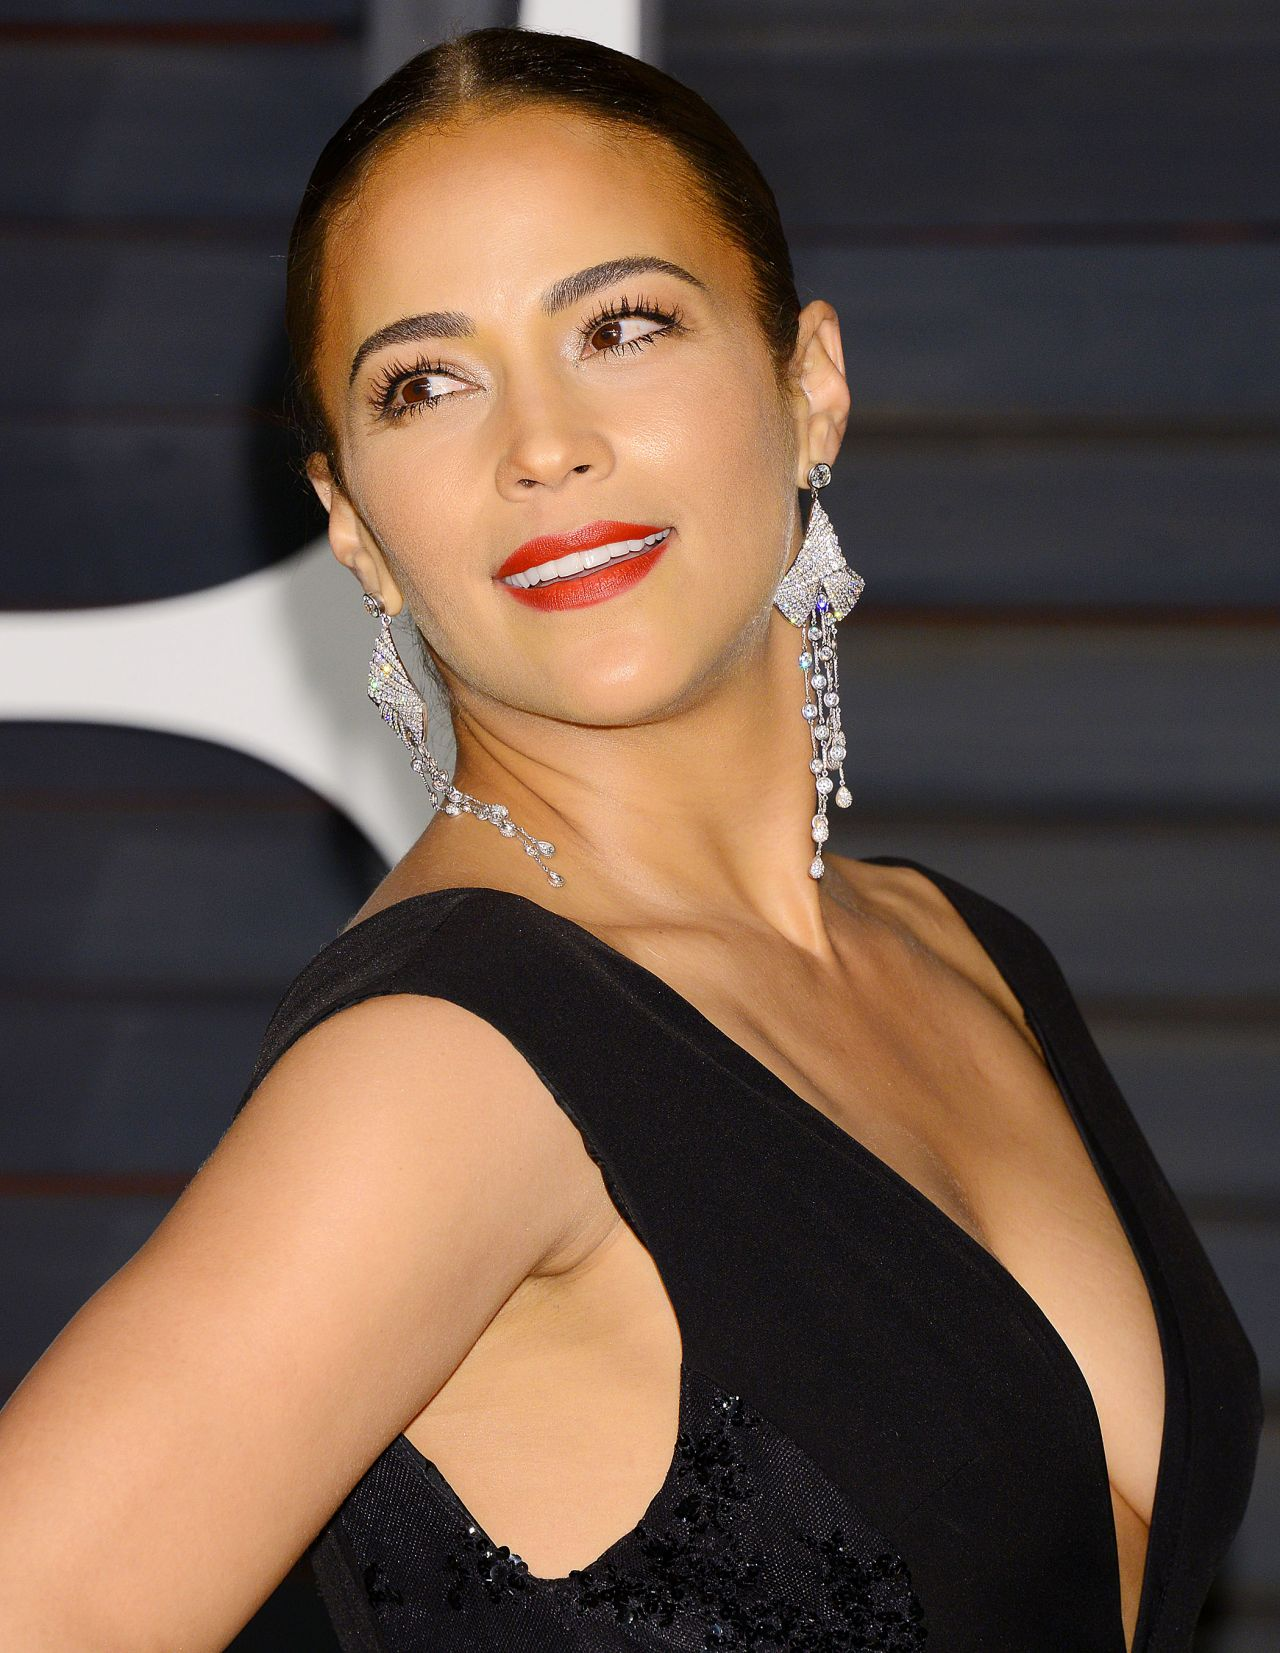 Paula Patton 2015 Vanity Fair Oscar Party In Hollywood 278391 also Ritost29trmu as well Facts kirchner in addition 099 85 Million Luxury Residence 1181 North Hillcrest Beverly Hills Ca as well Robert Duvall 83 Cradles Baby Arms Lunch Younger Wife Luciana Pedraza 42. on beverly hills view